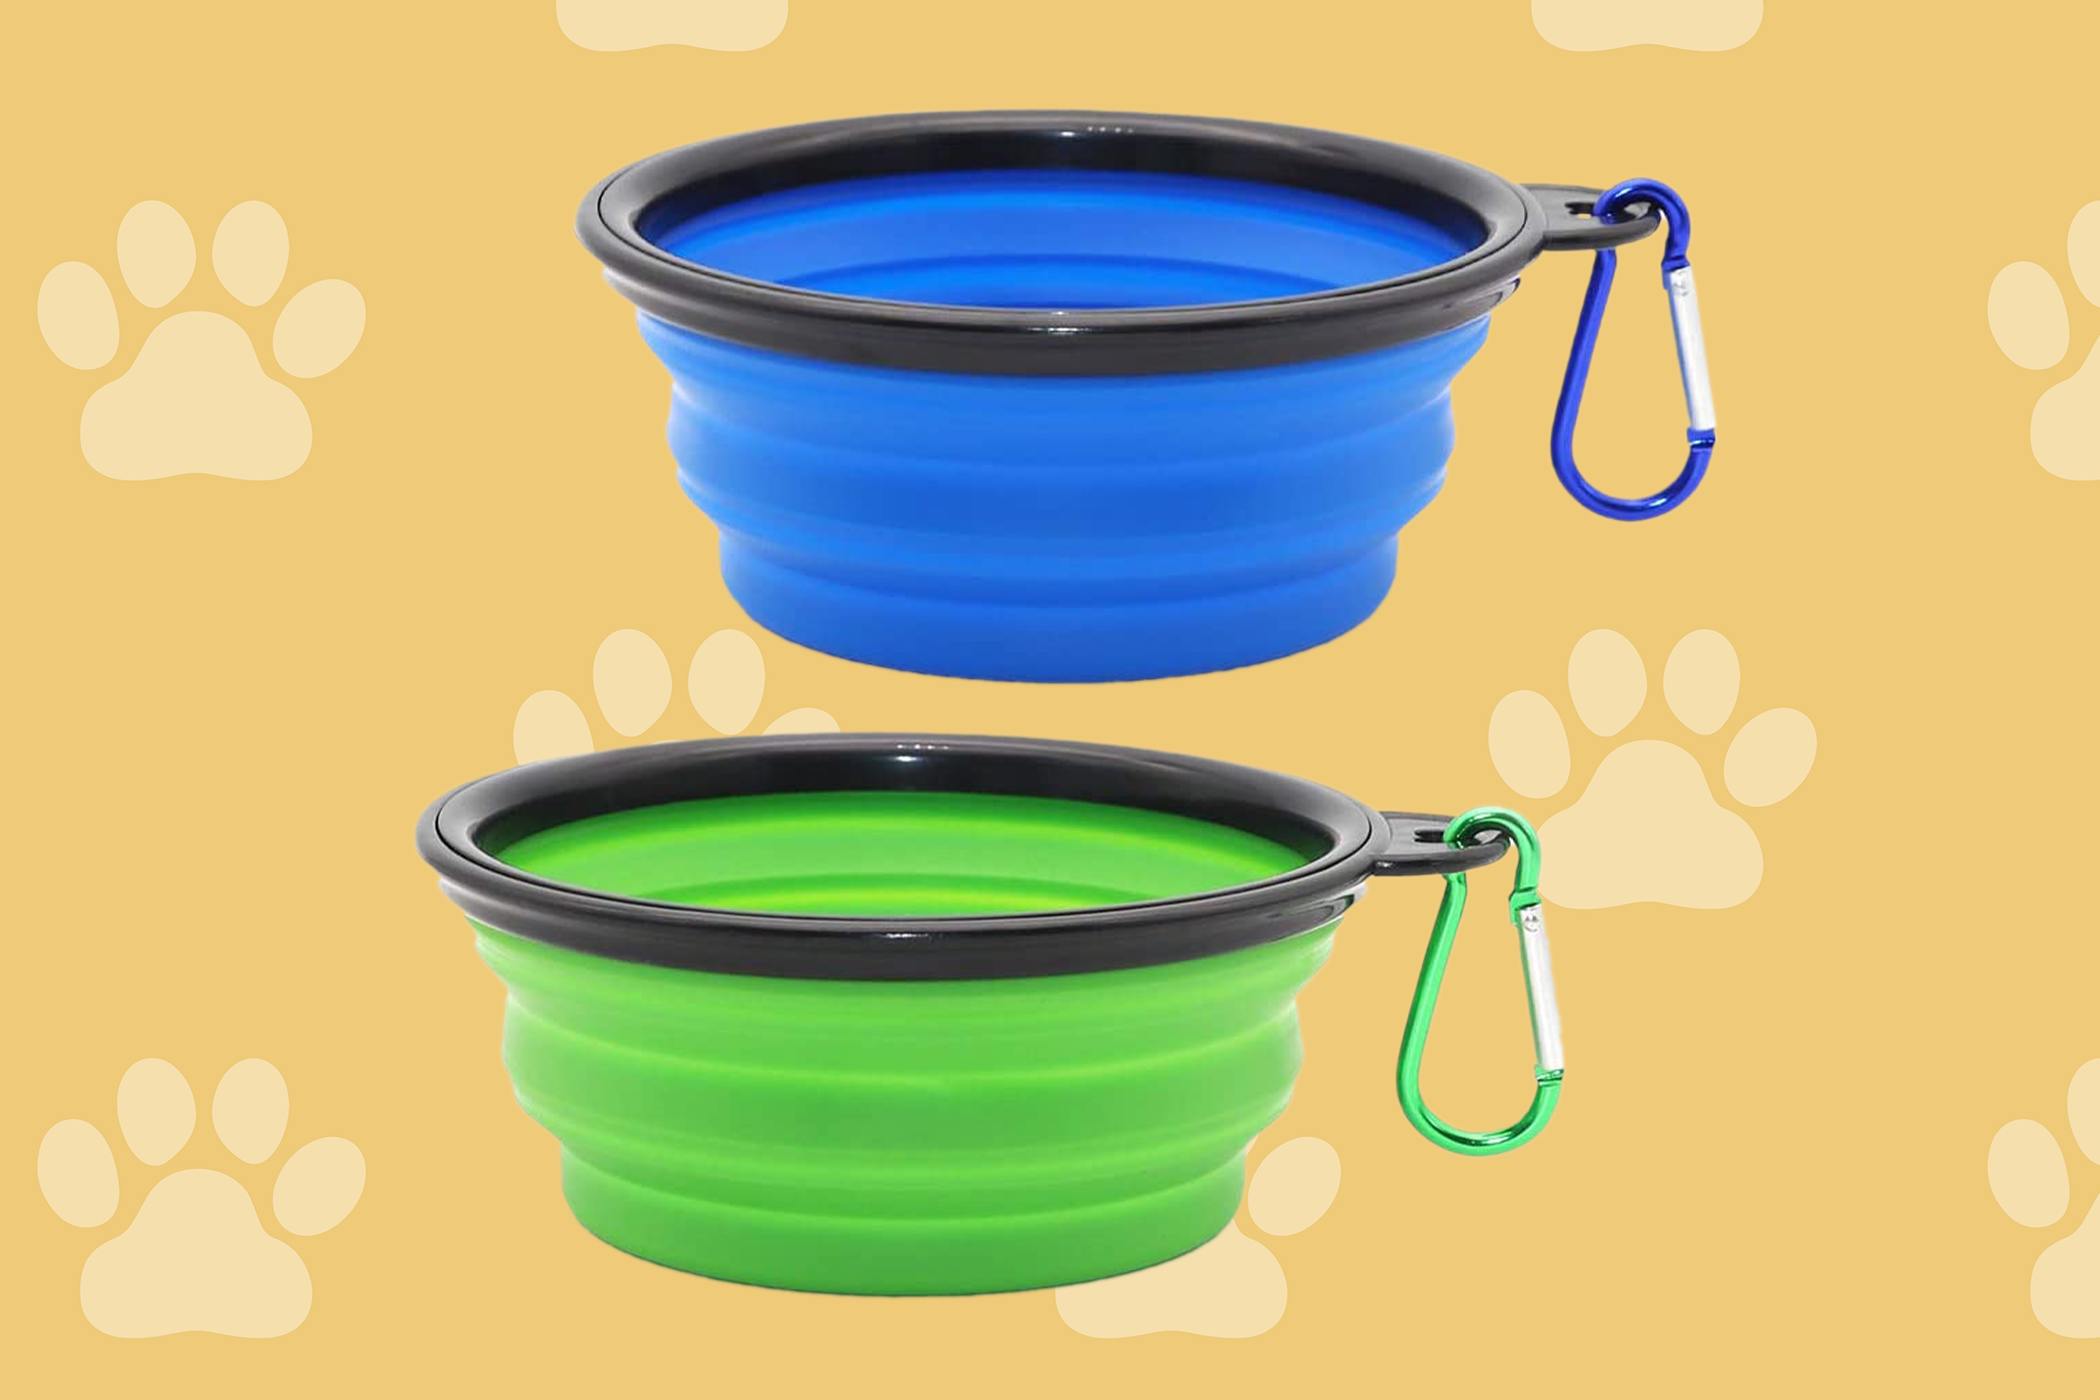 green and blue collapsible dog bowls